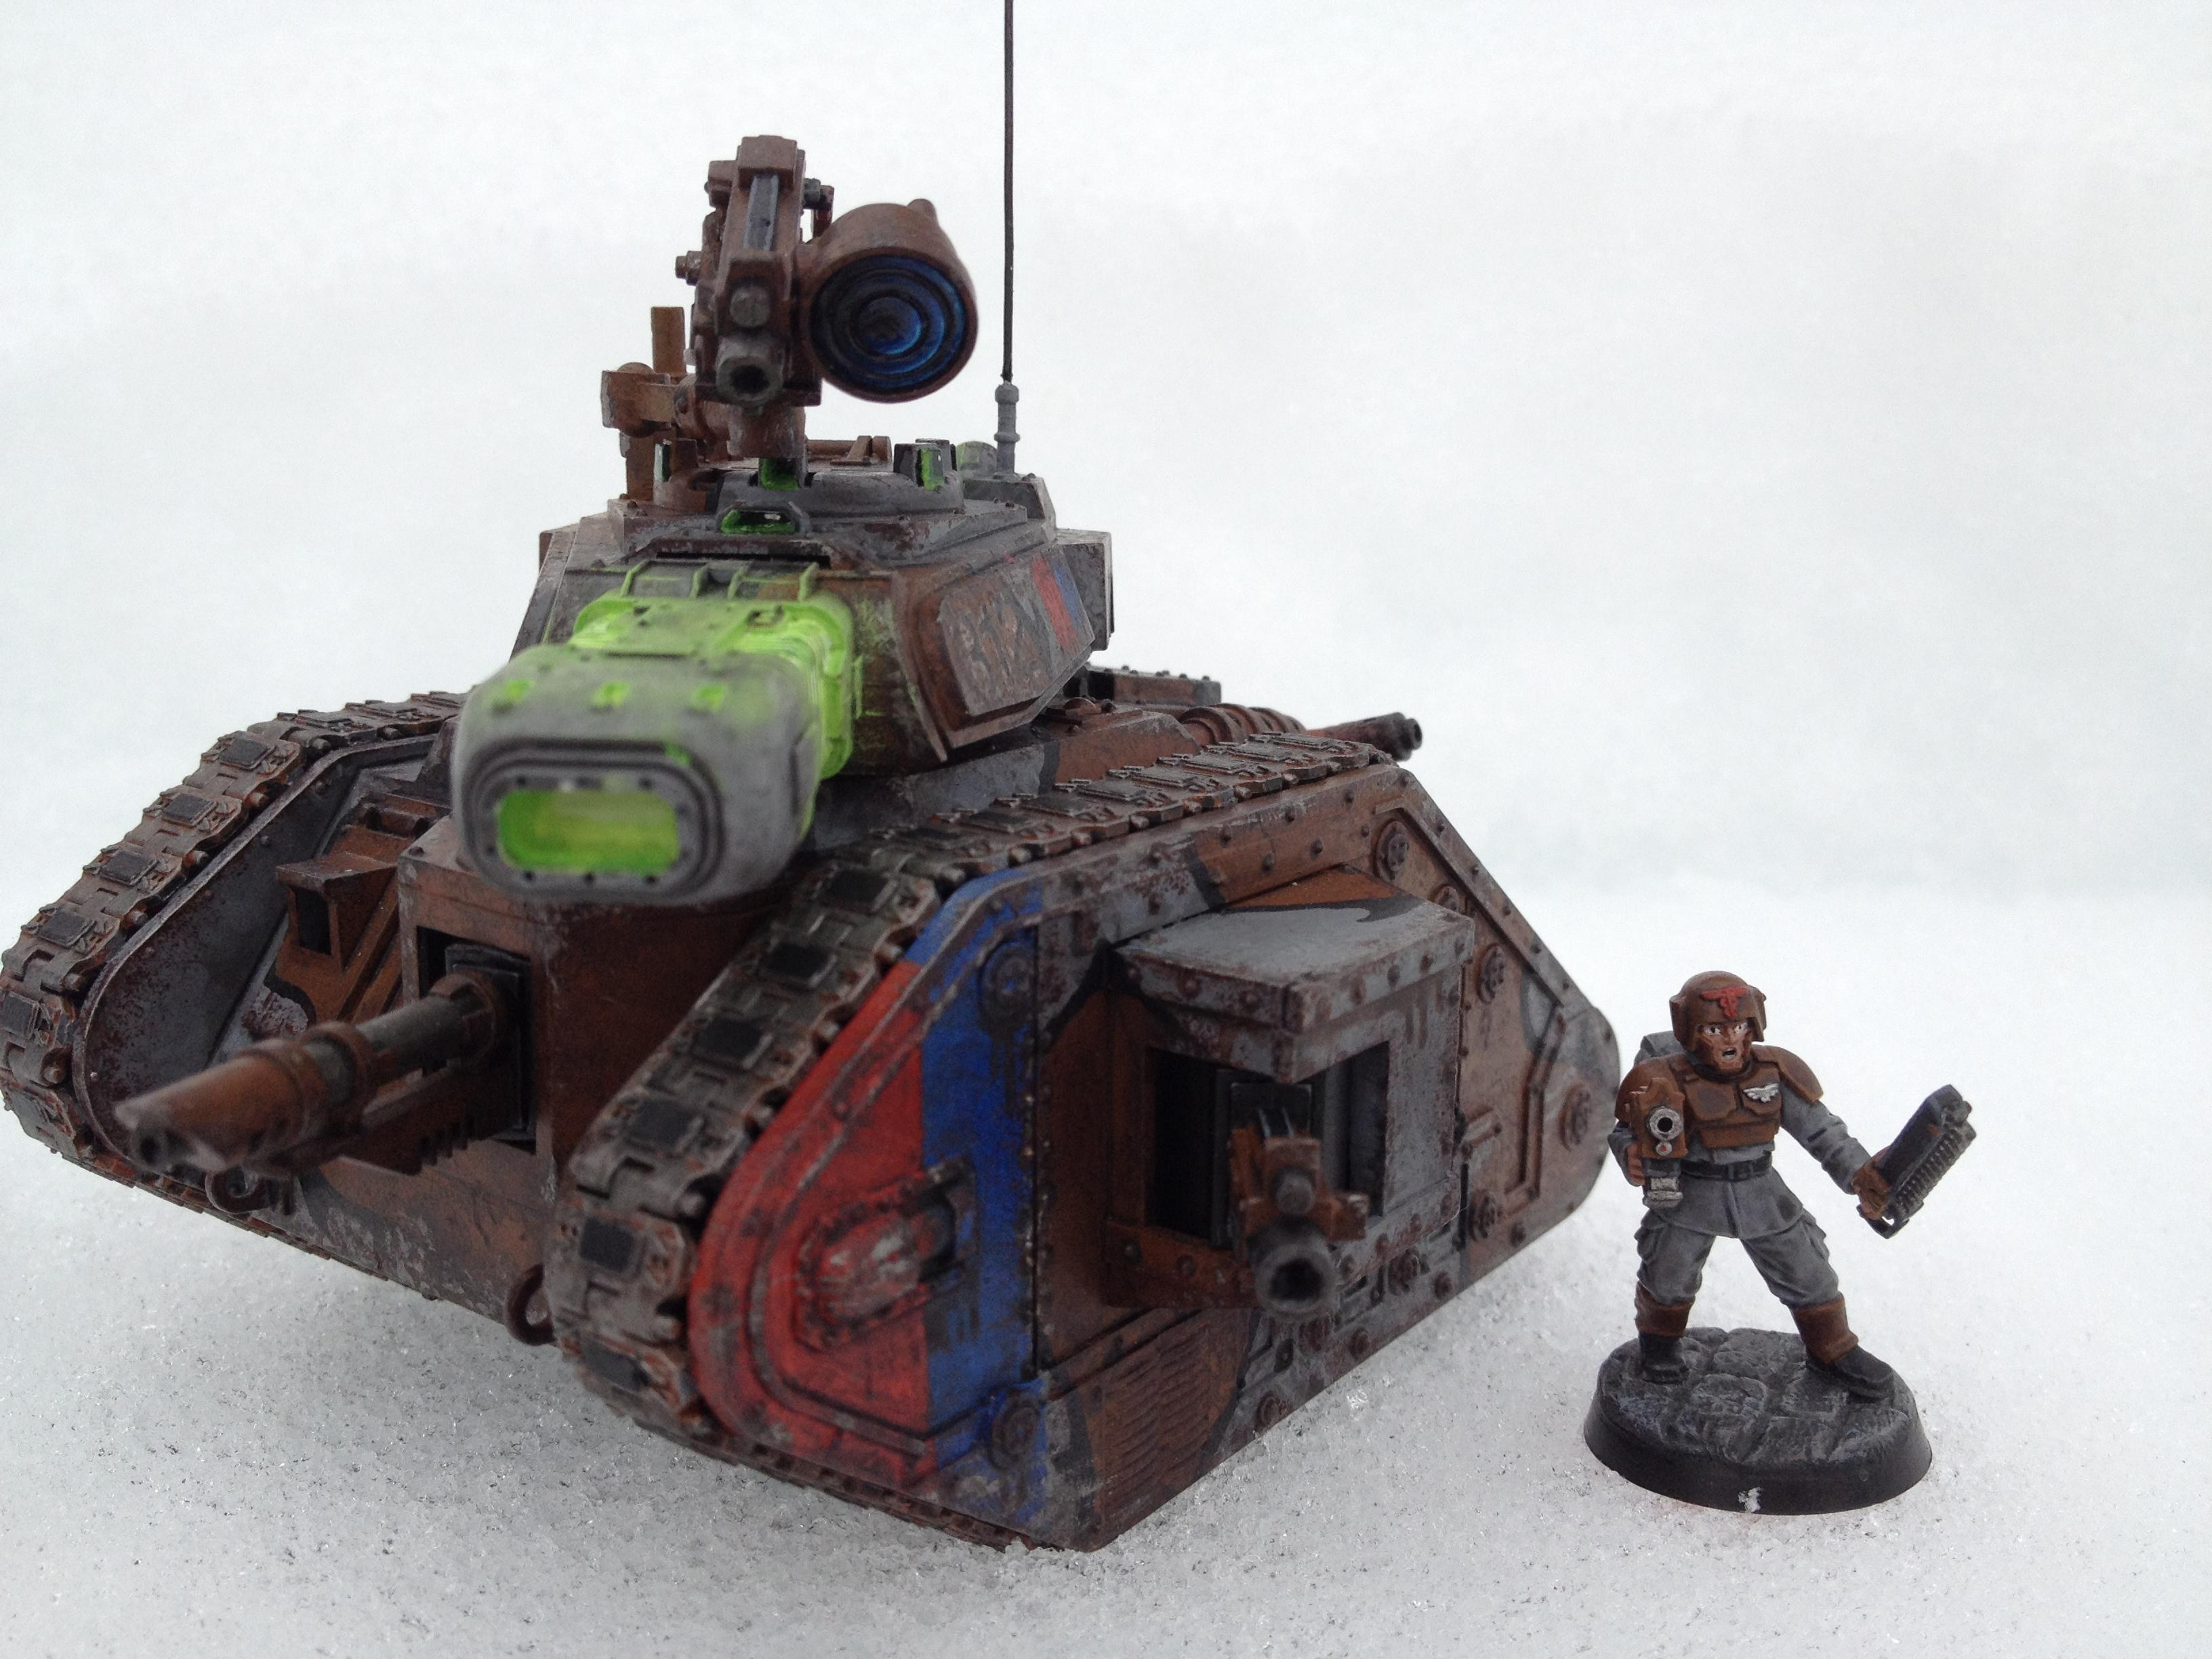 Cadians, Conversion, Executioner, Imperial Guard, Leman Russ, Plasma